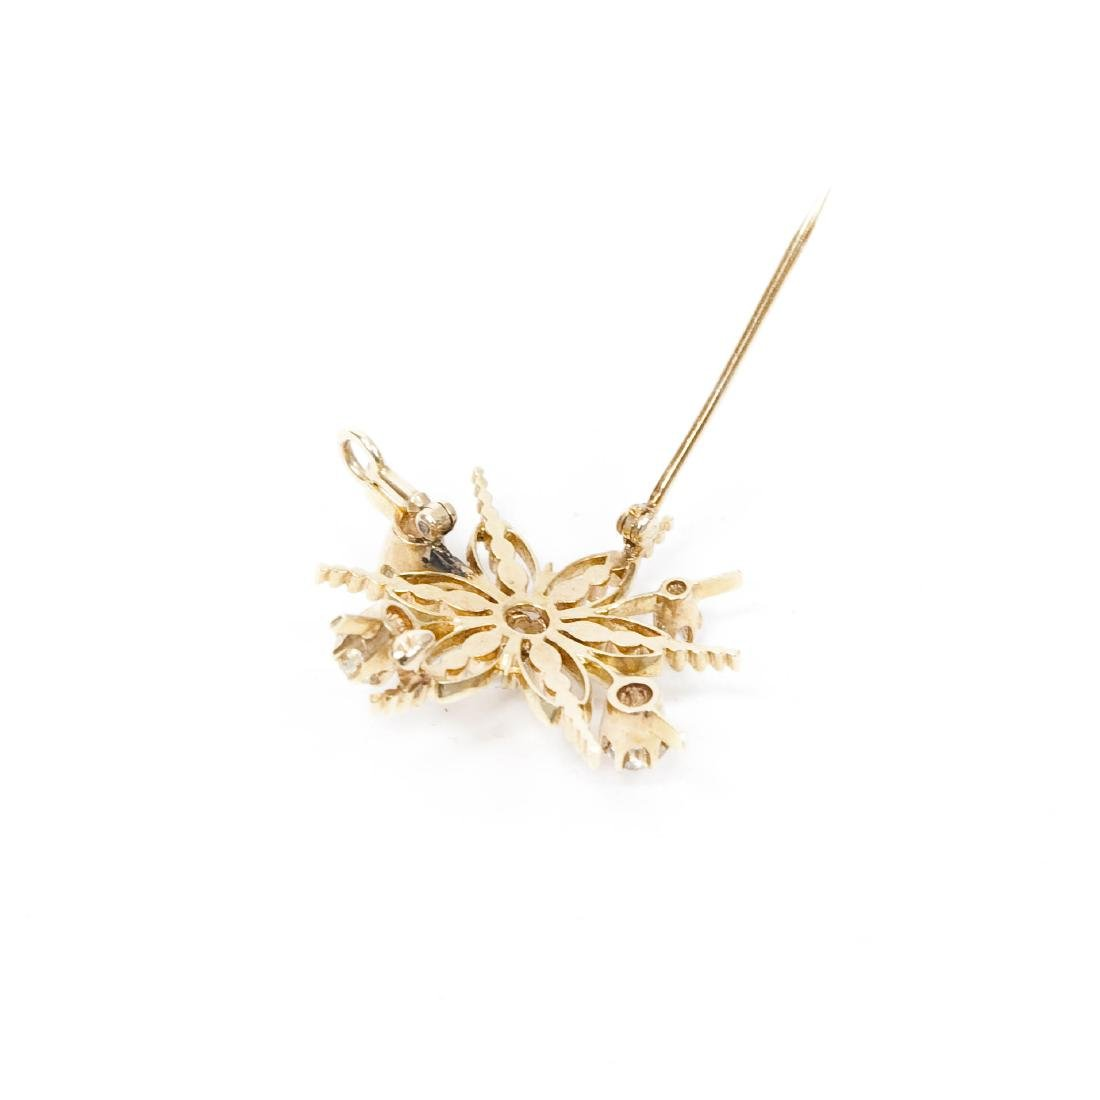 Gold And Diamond Pendant / Brooch. - 2